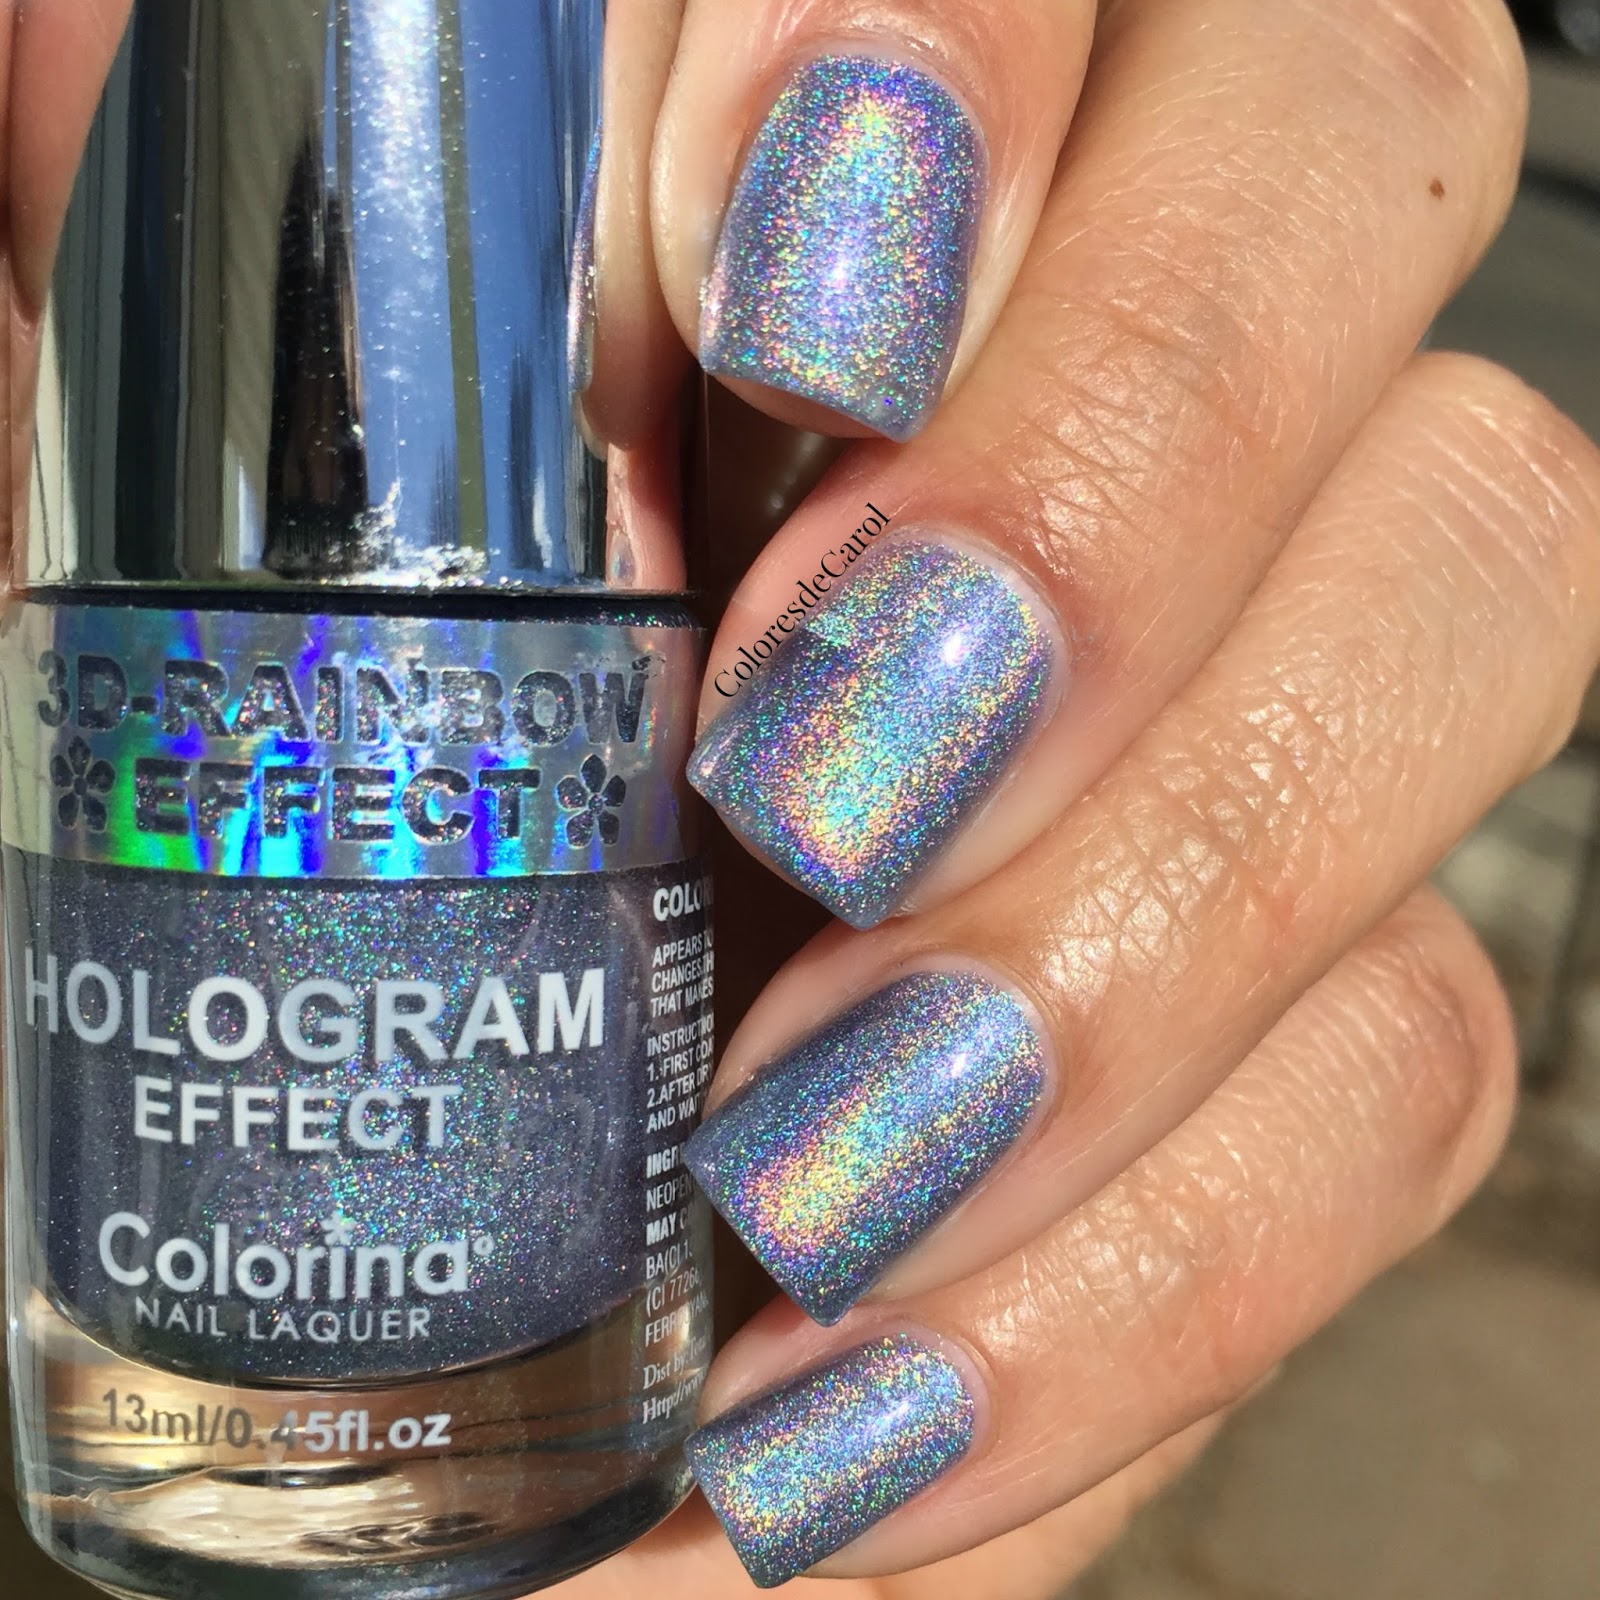 Colorina Rainbow Effect Hologram Nail Polshes Swatches And Review